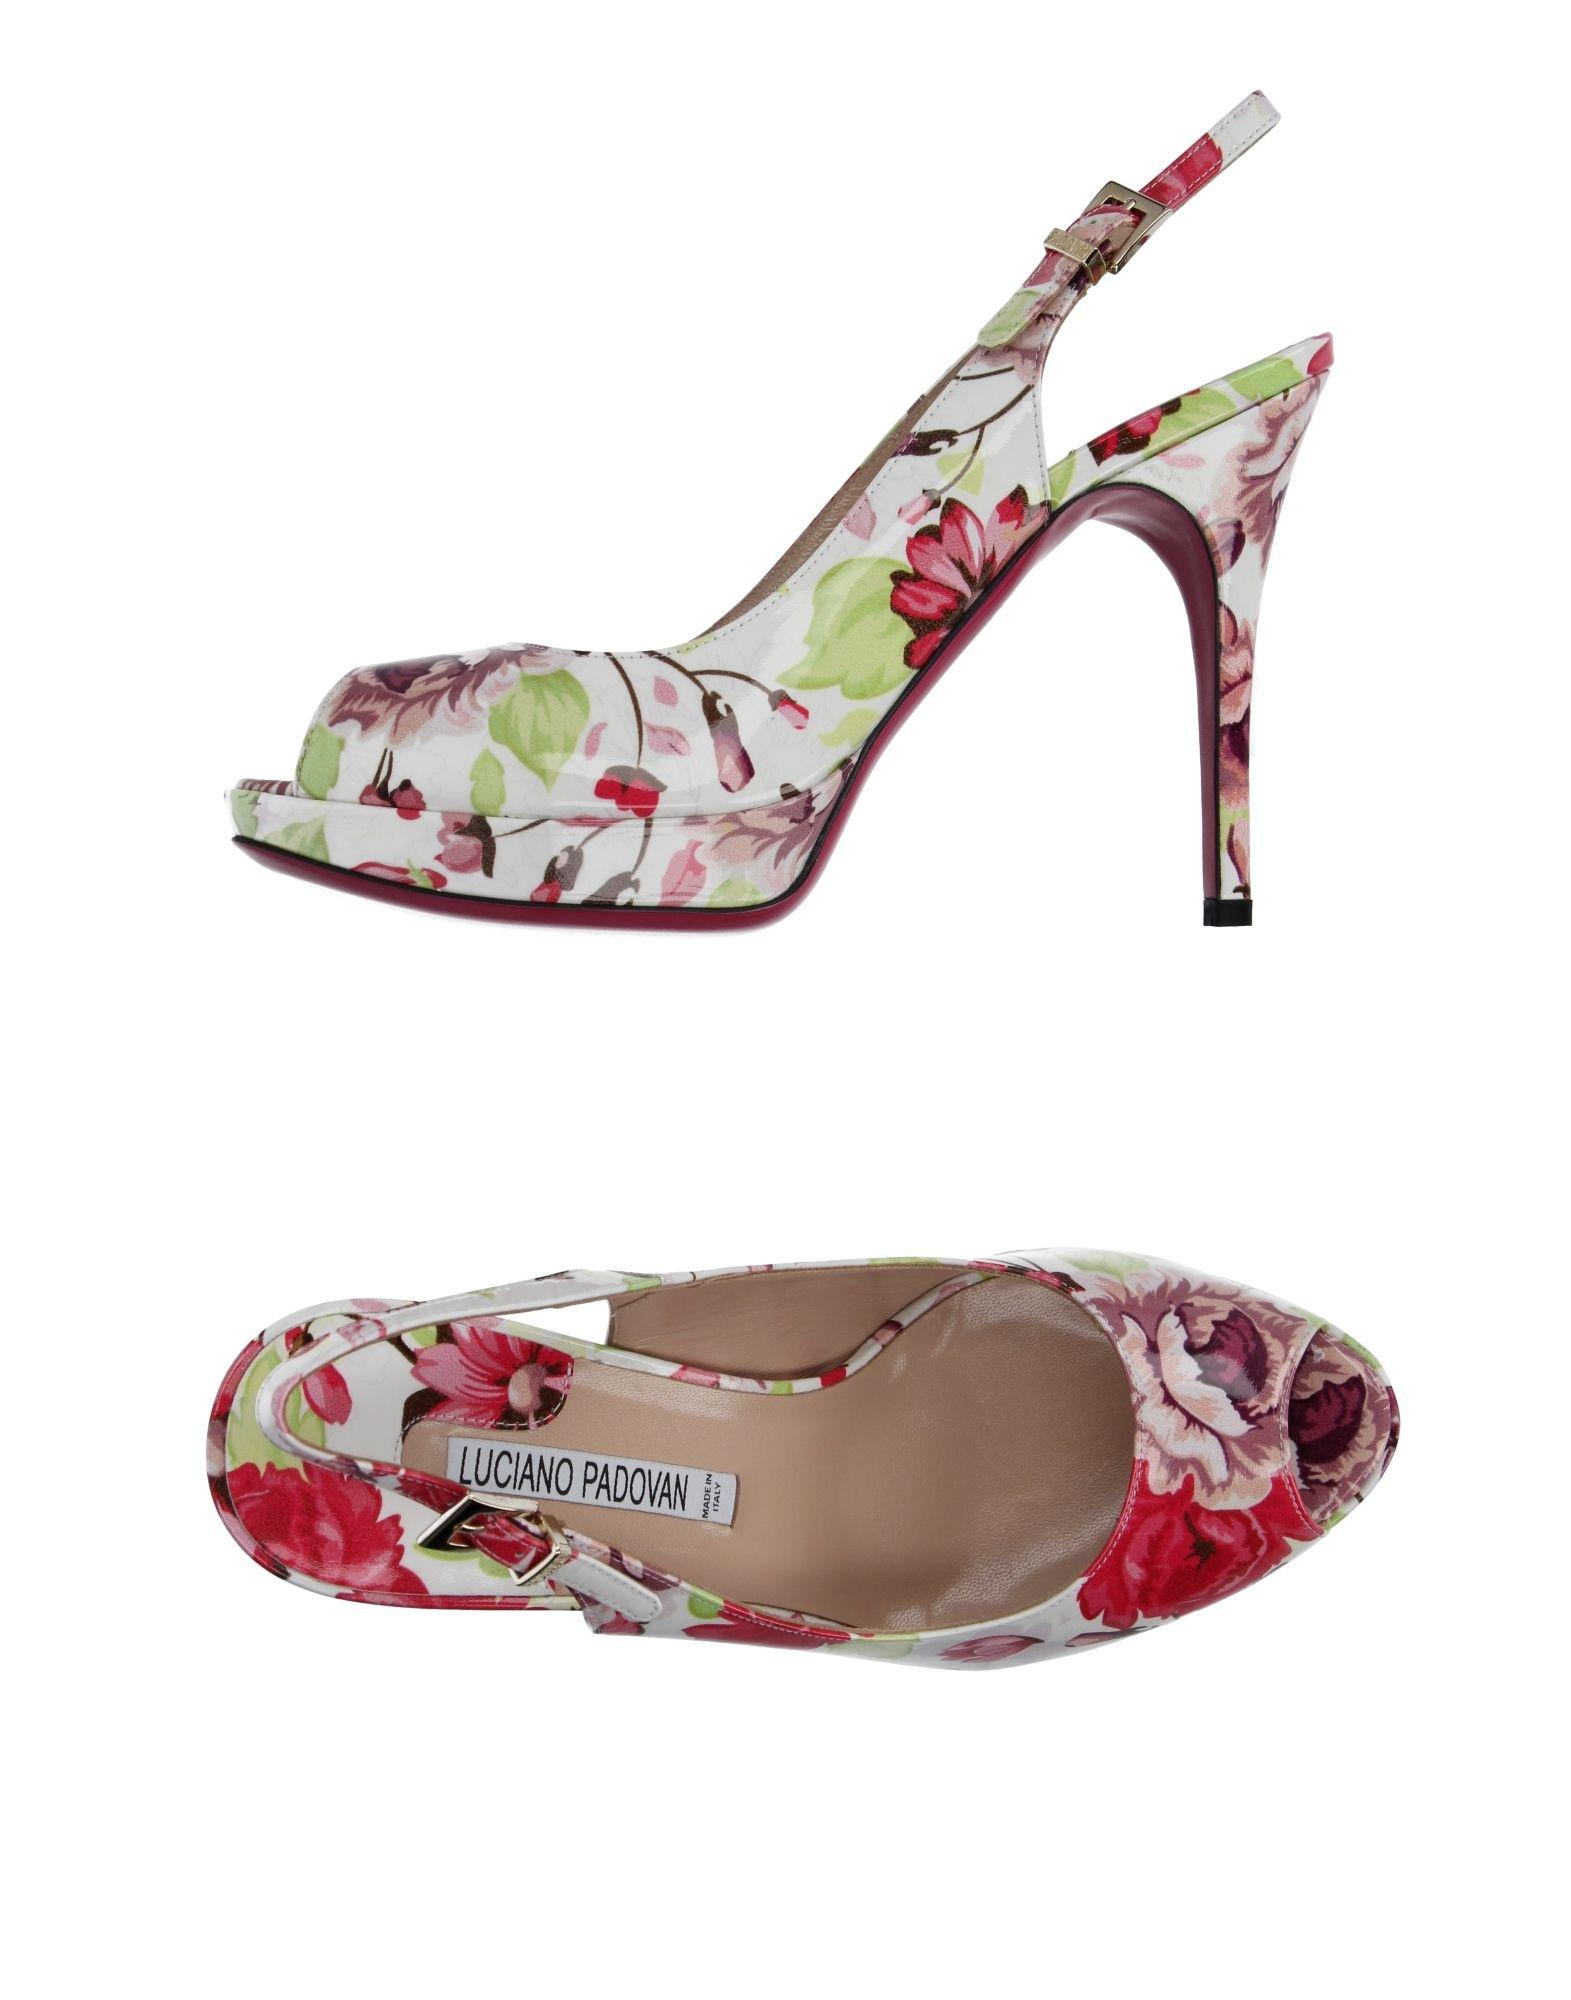 LUCIANO PADOVAN Sandals online cheap quality reliable discount 100% authentic discount 100% guaranteed aVBrMsD